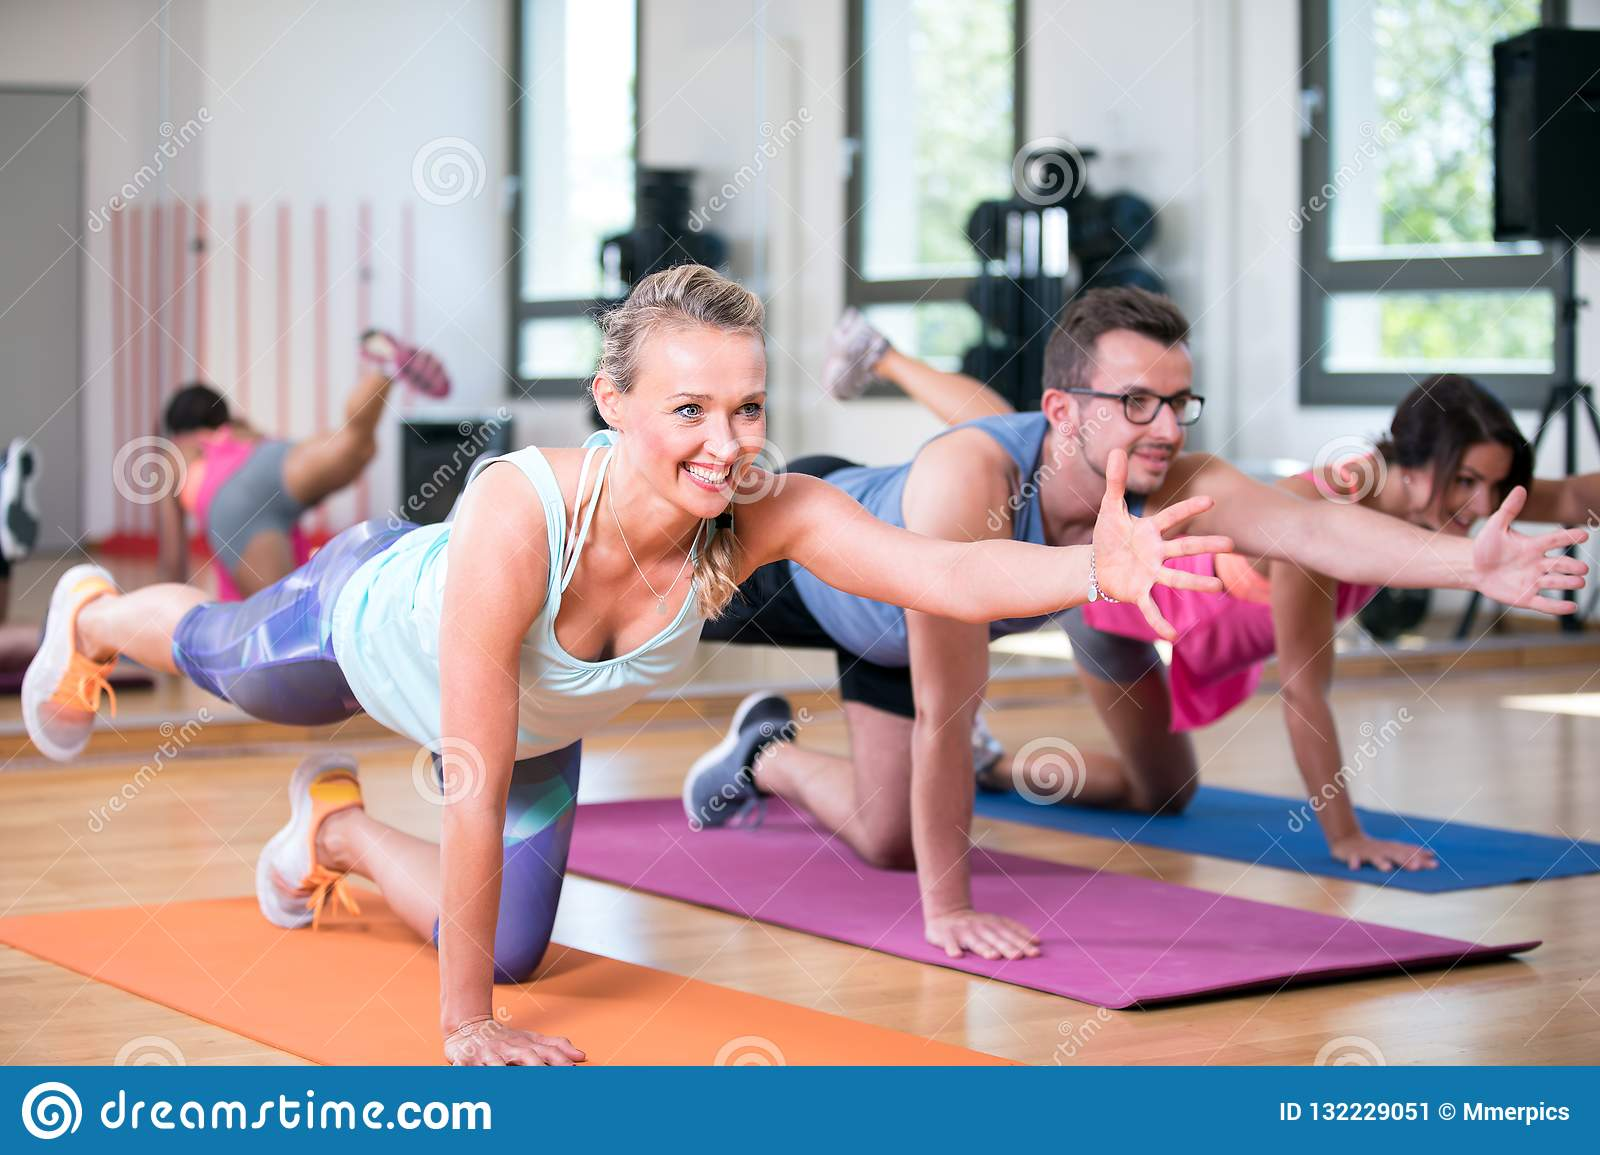 Beautiful women man group are doing sport fitness workout in a gym